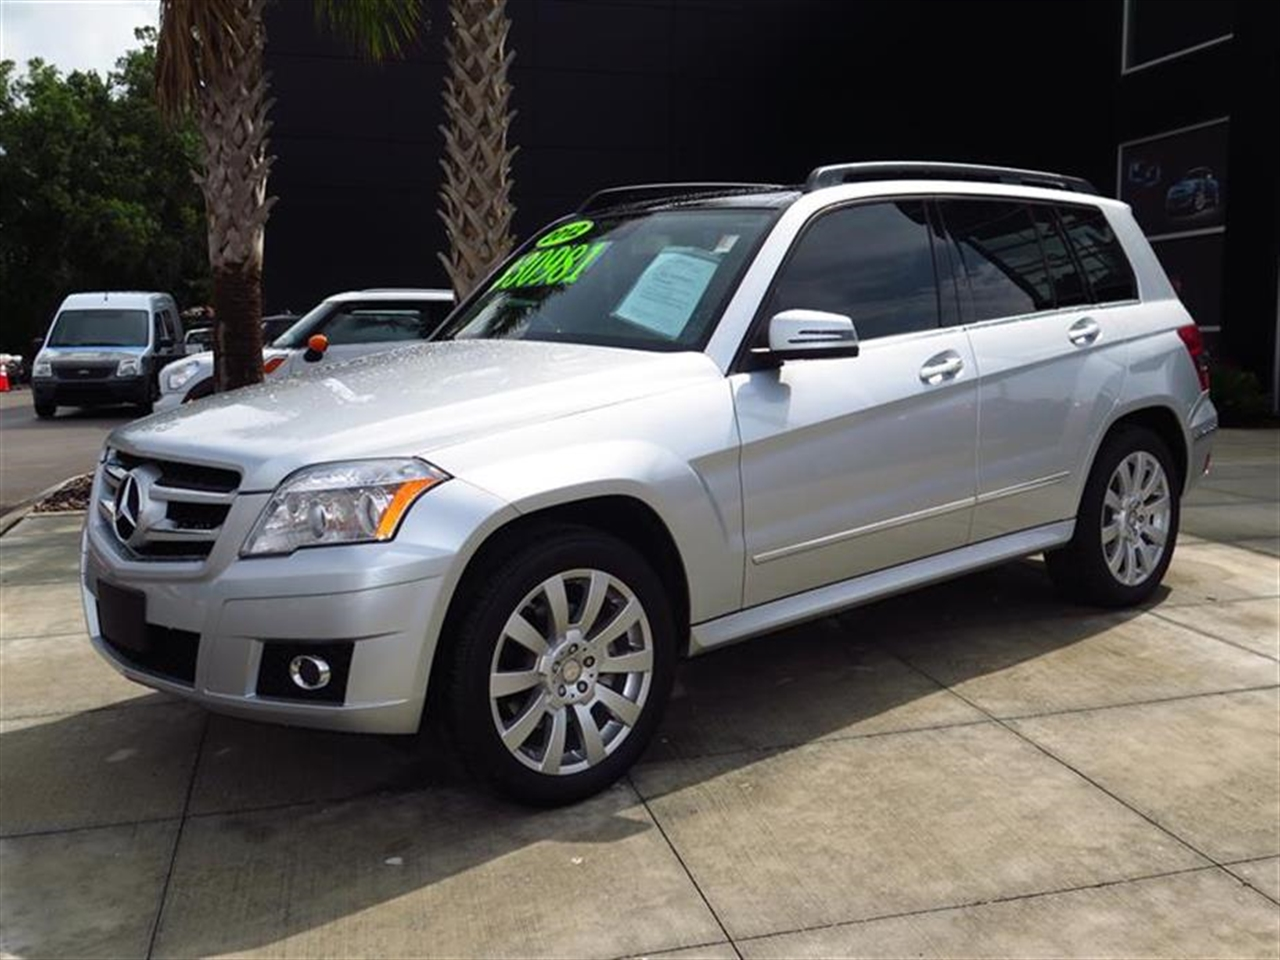 2012 Mercedes GLK-CLASS RWD 4dr GLK350 43721 miles 8-way pwr front bucket seats wactive head rest